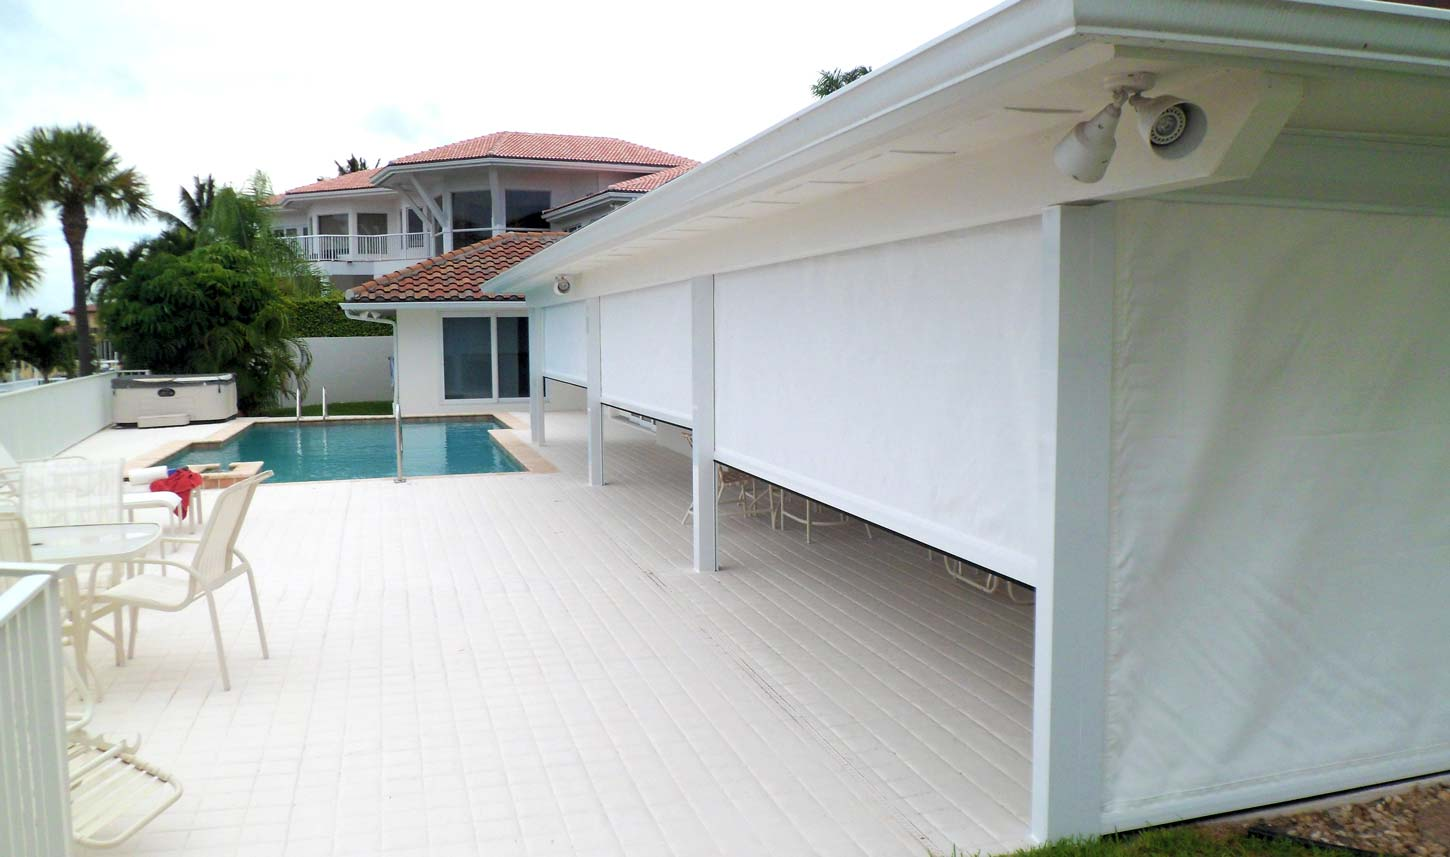 Solar Point retractable hurricane screens